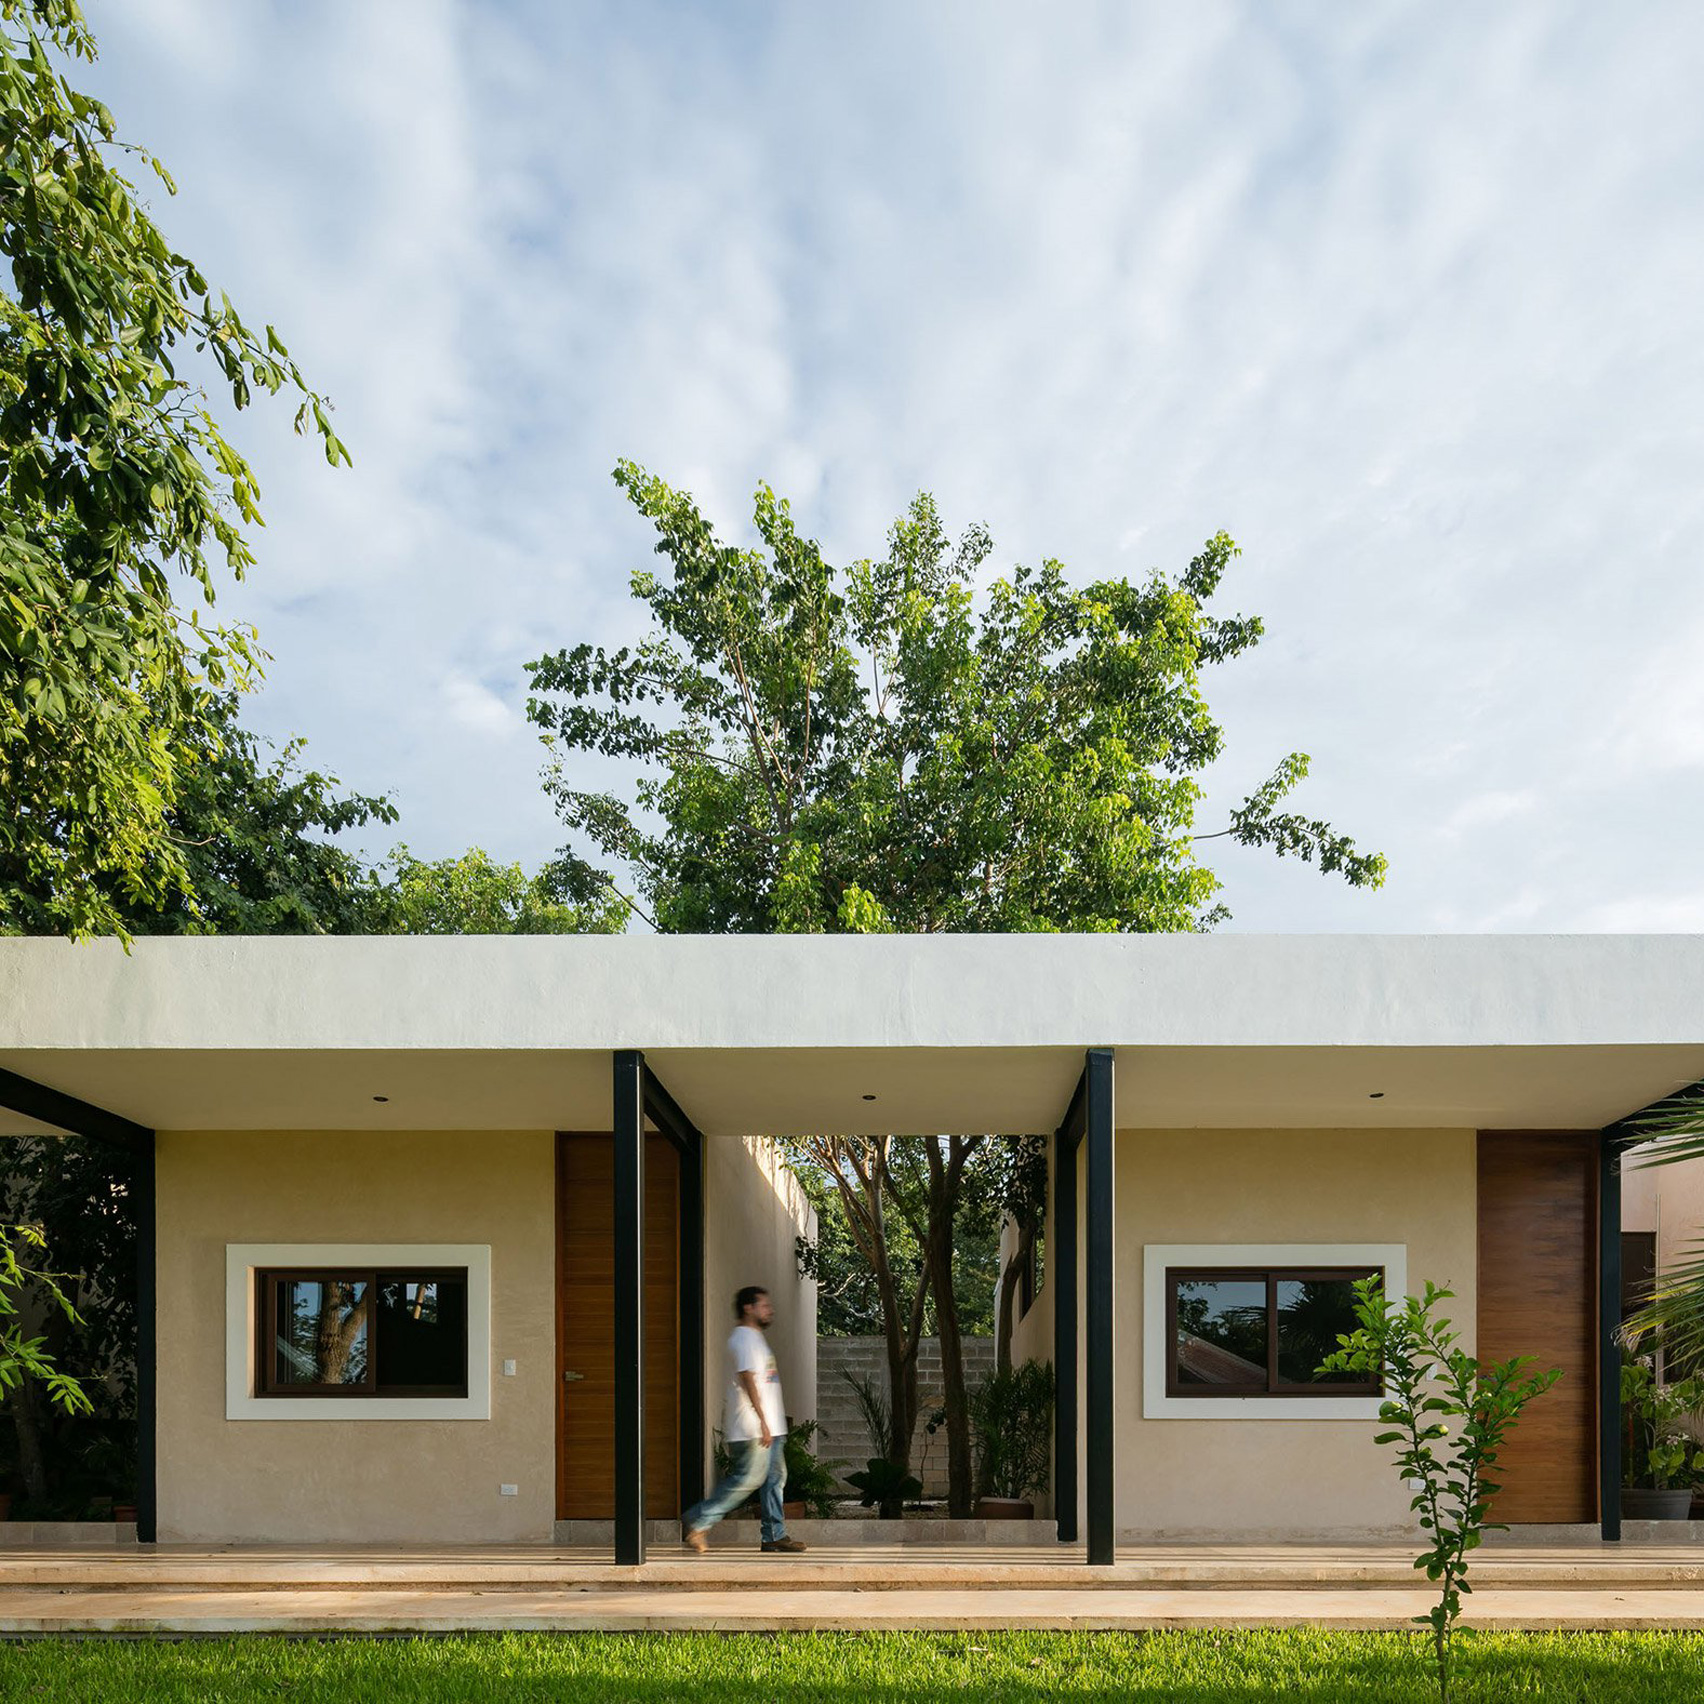 House design photos - Steel Colonnades Create Sheltered Outdoor Spaces At Mexican Hacienda